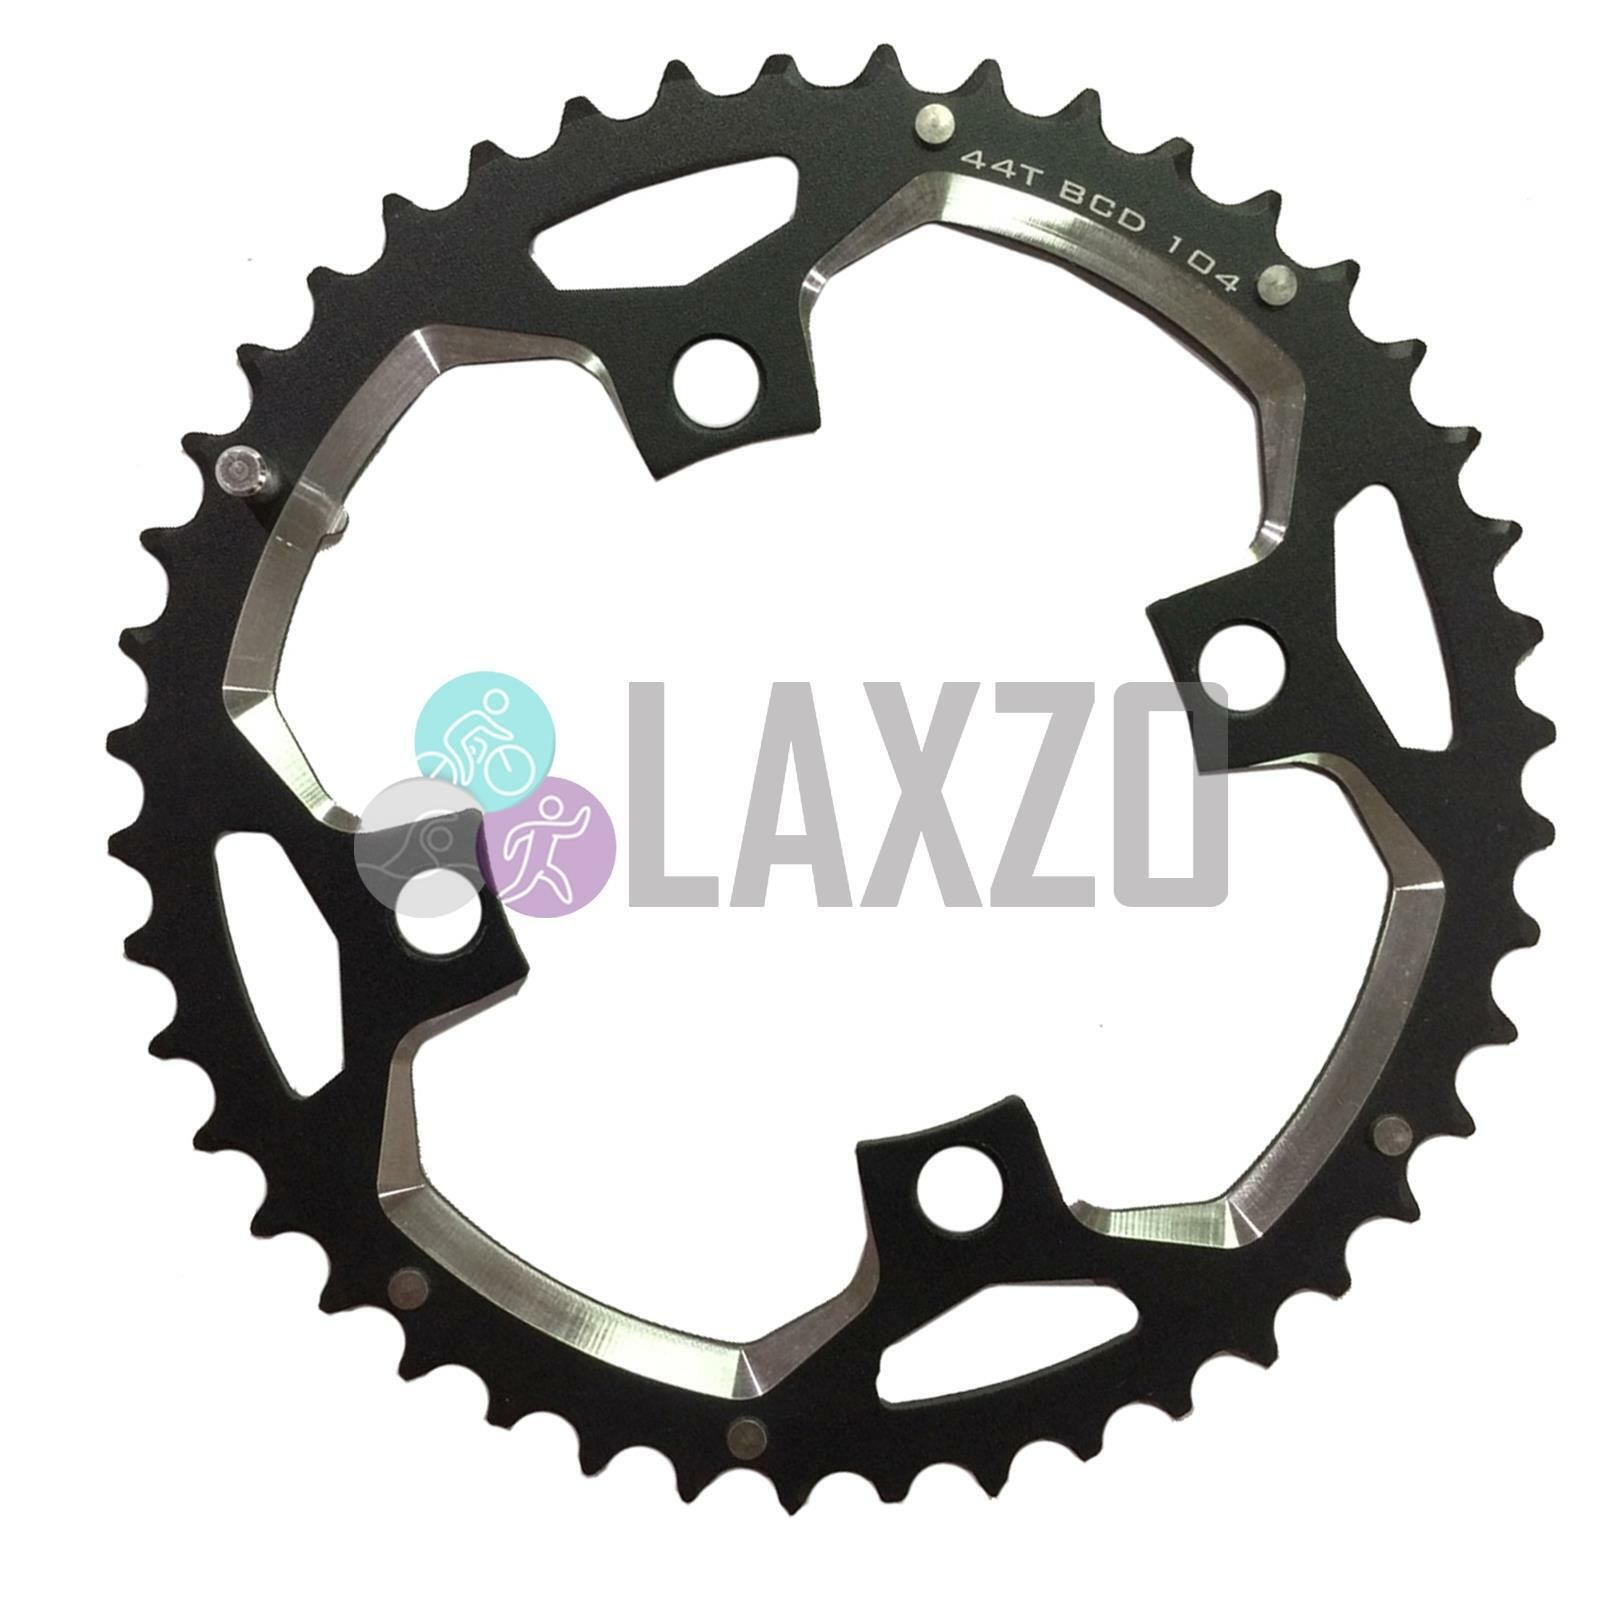 104bcd  44t Crankset Alloy Knitted CNC For MTB Road Bicycle-Sand Blast  save up to 70%